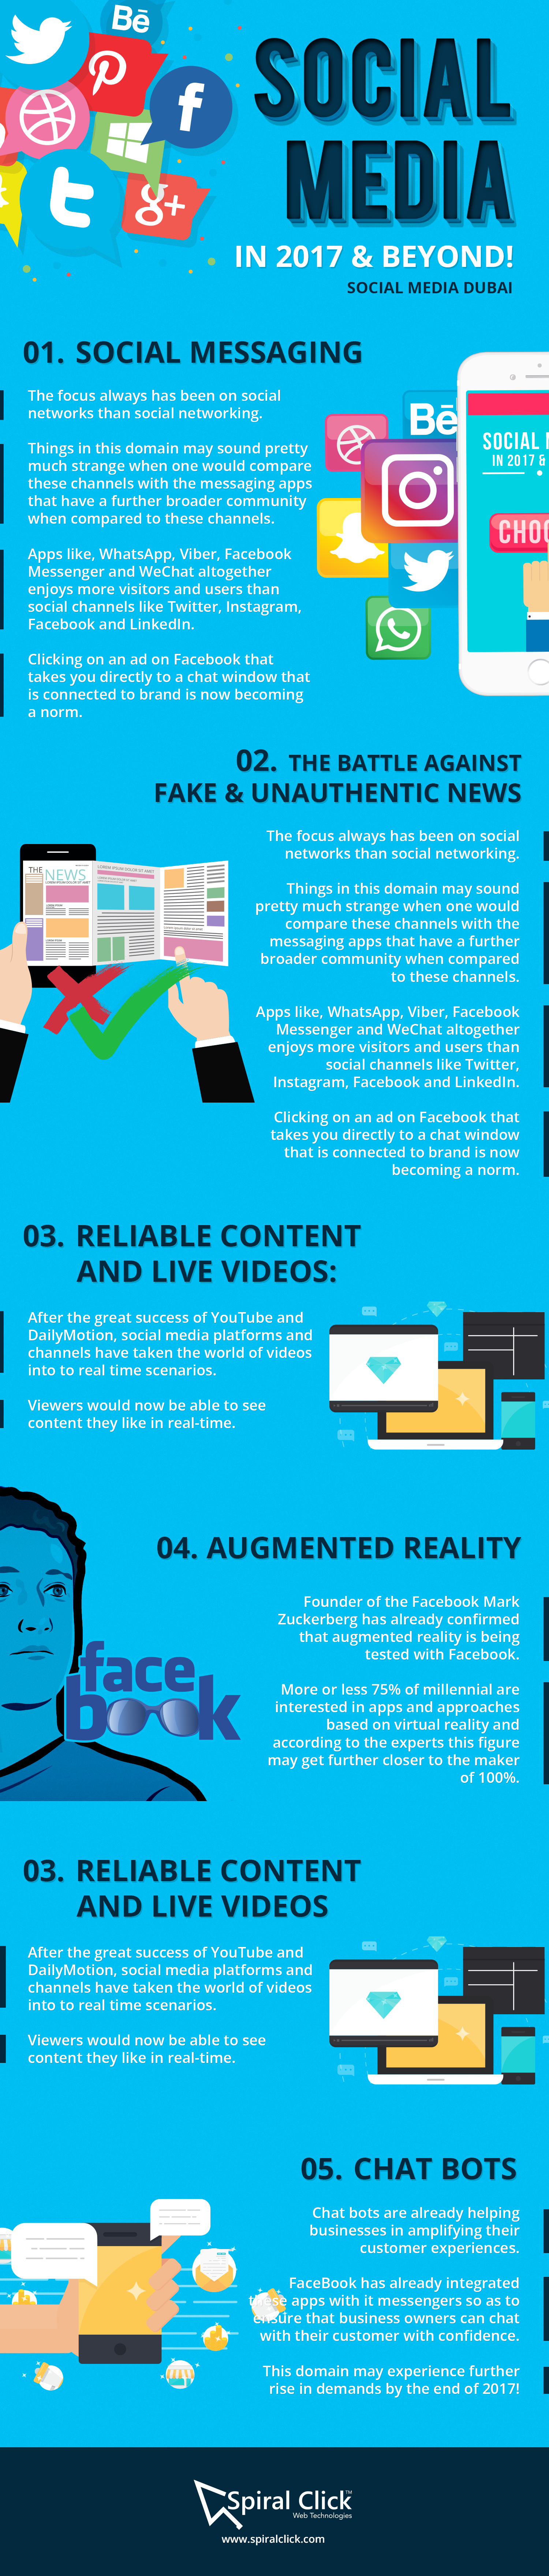 Social Media Marketing In 2017 And Beyond! Infographic